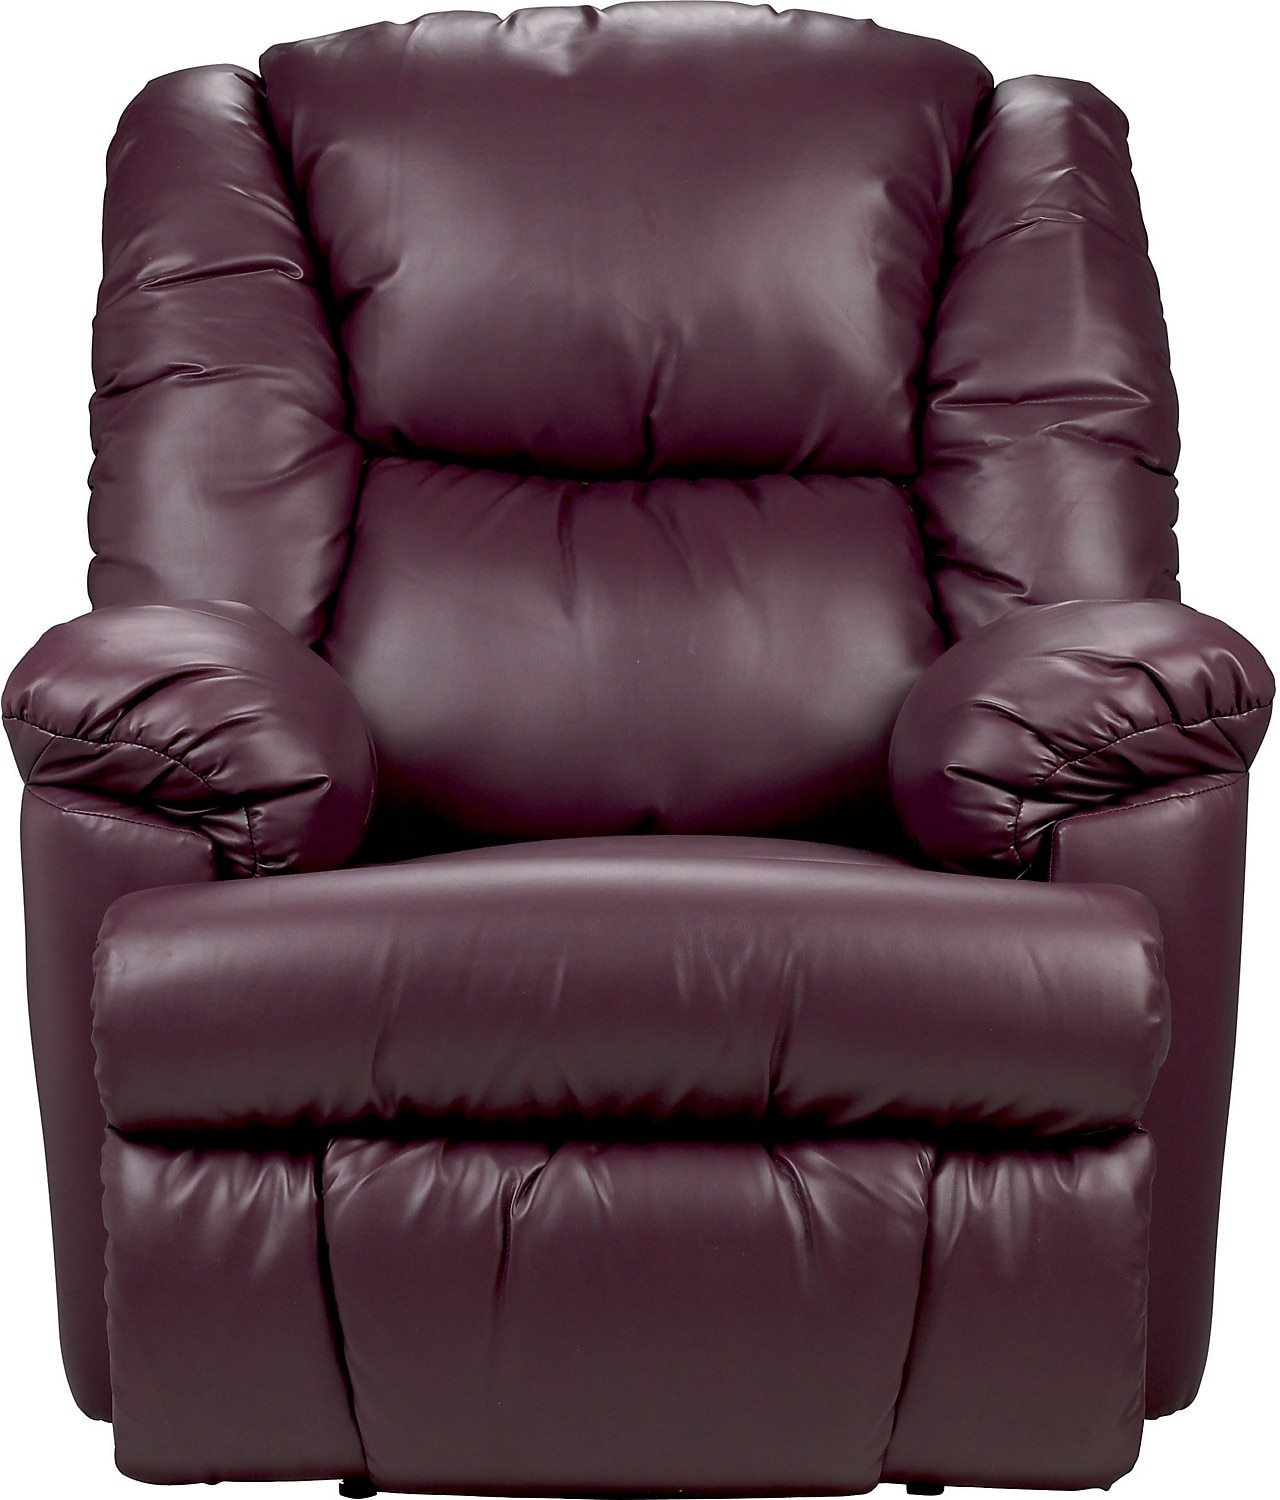 Bmaxx Bonded Leather Power Reclining Chair – Purple